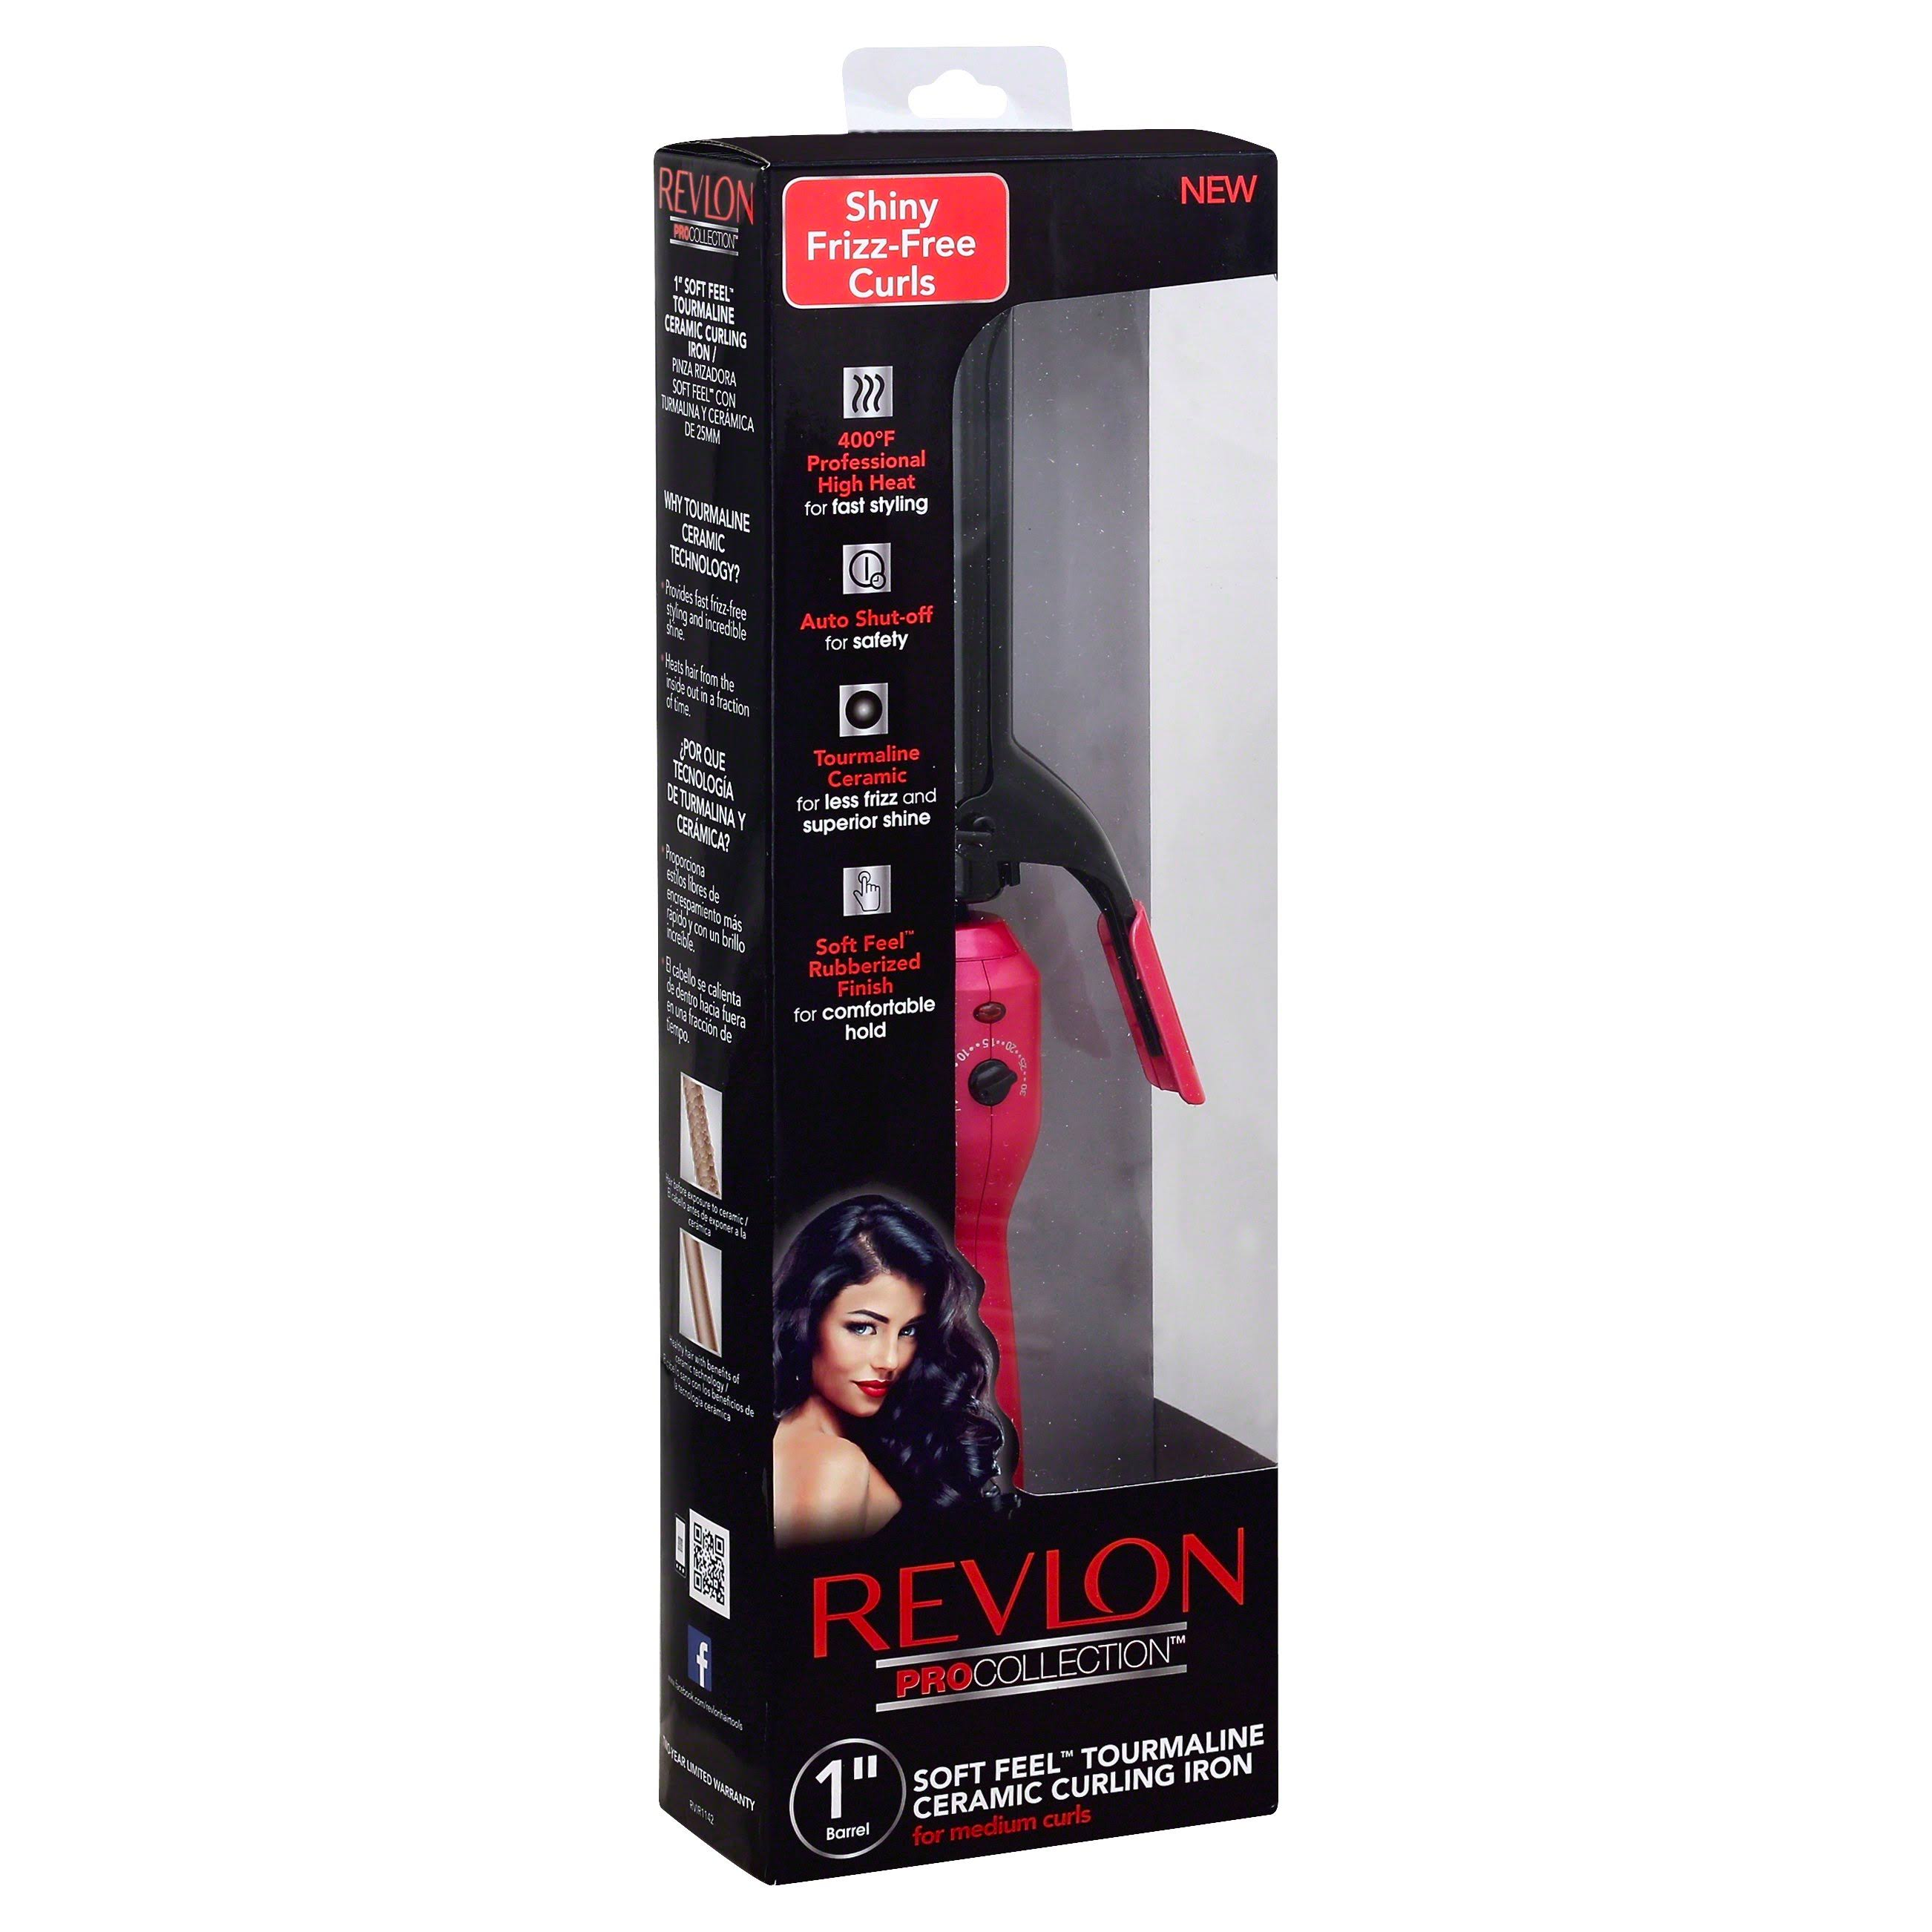 Revlon Pro Collection Barrel Tourmaline Ceramic Curling Iron - 1in